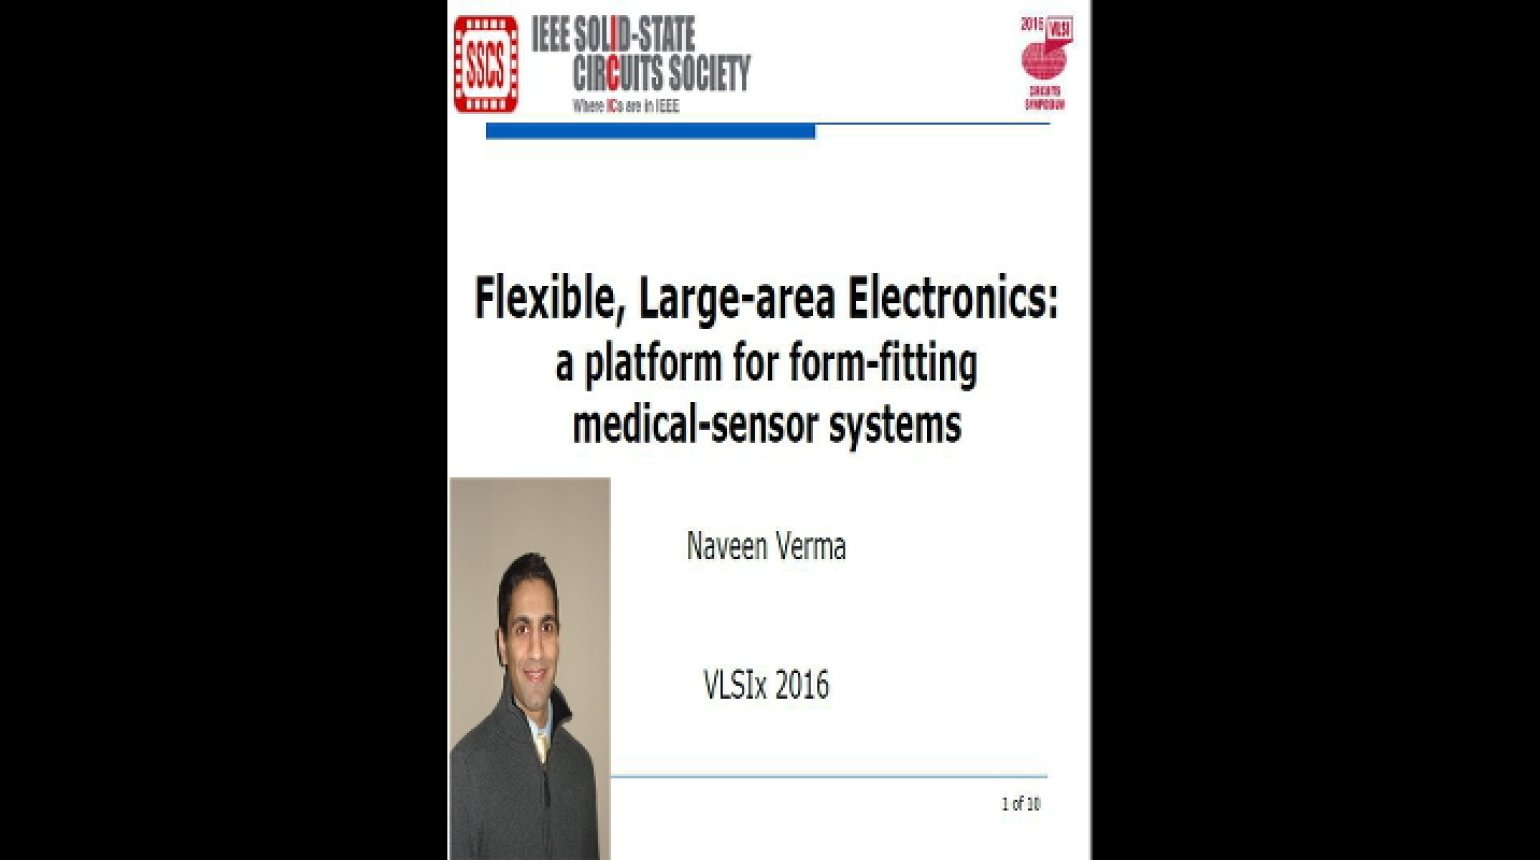 Flexible, Large-area Electronics: a platform for form-fitting medical-sensor systems Video